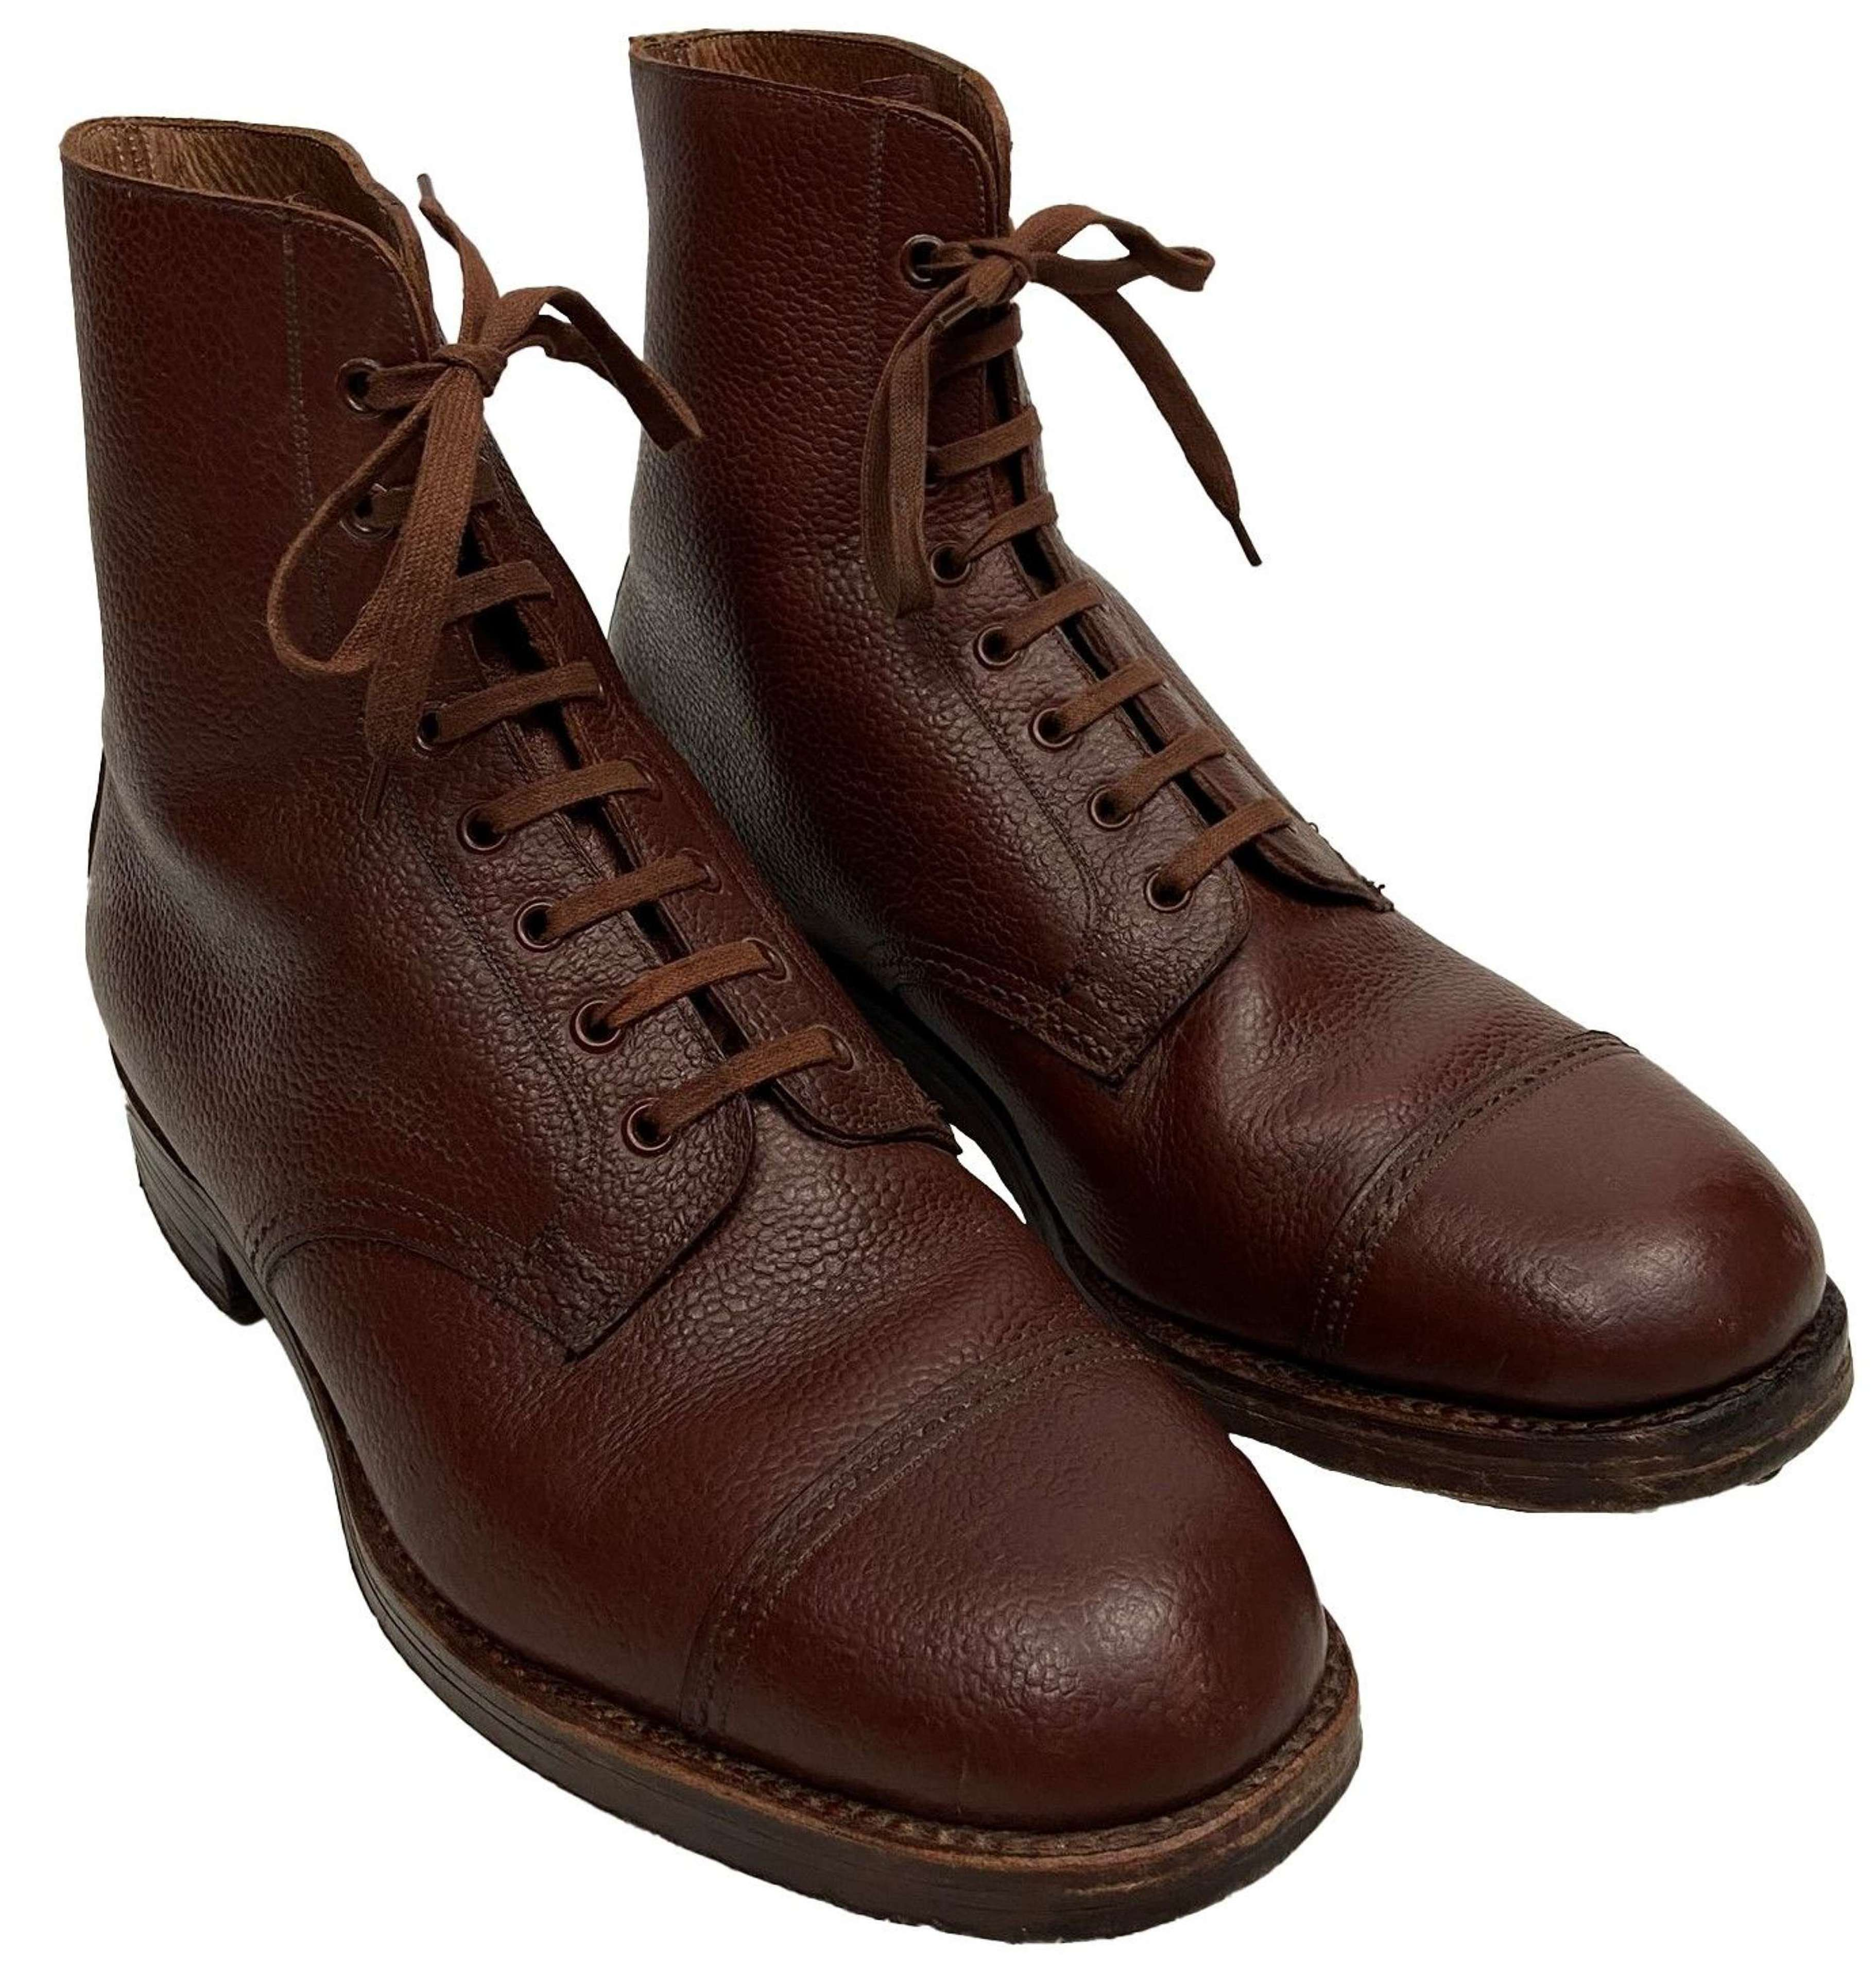 Stunning Original CC41 Men's Brown Leather Ankle Boots - Size 8